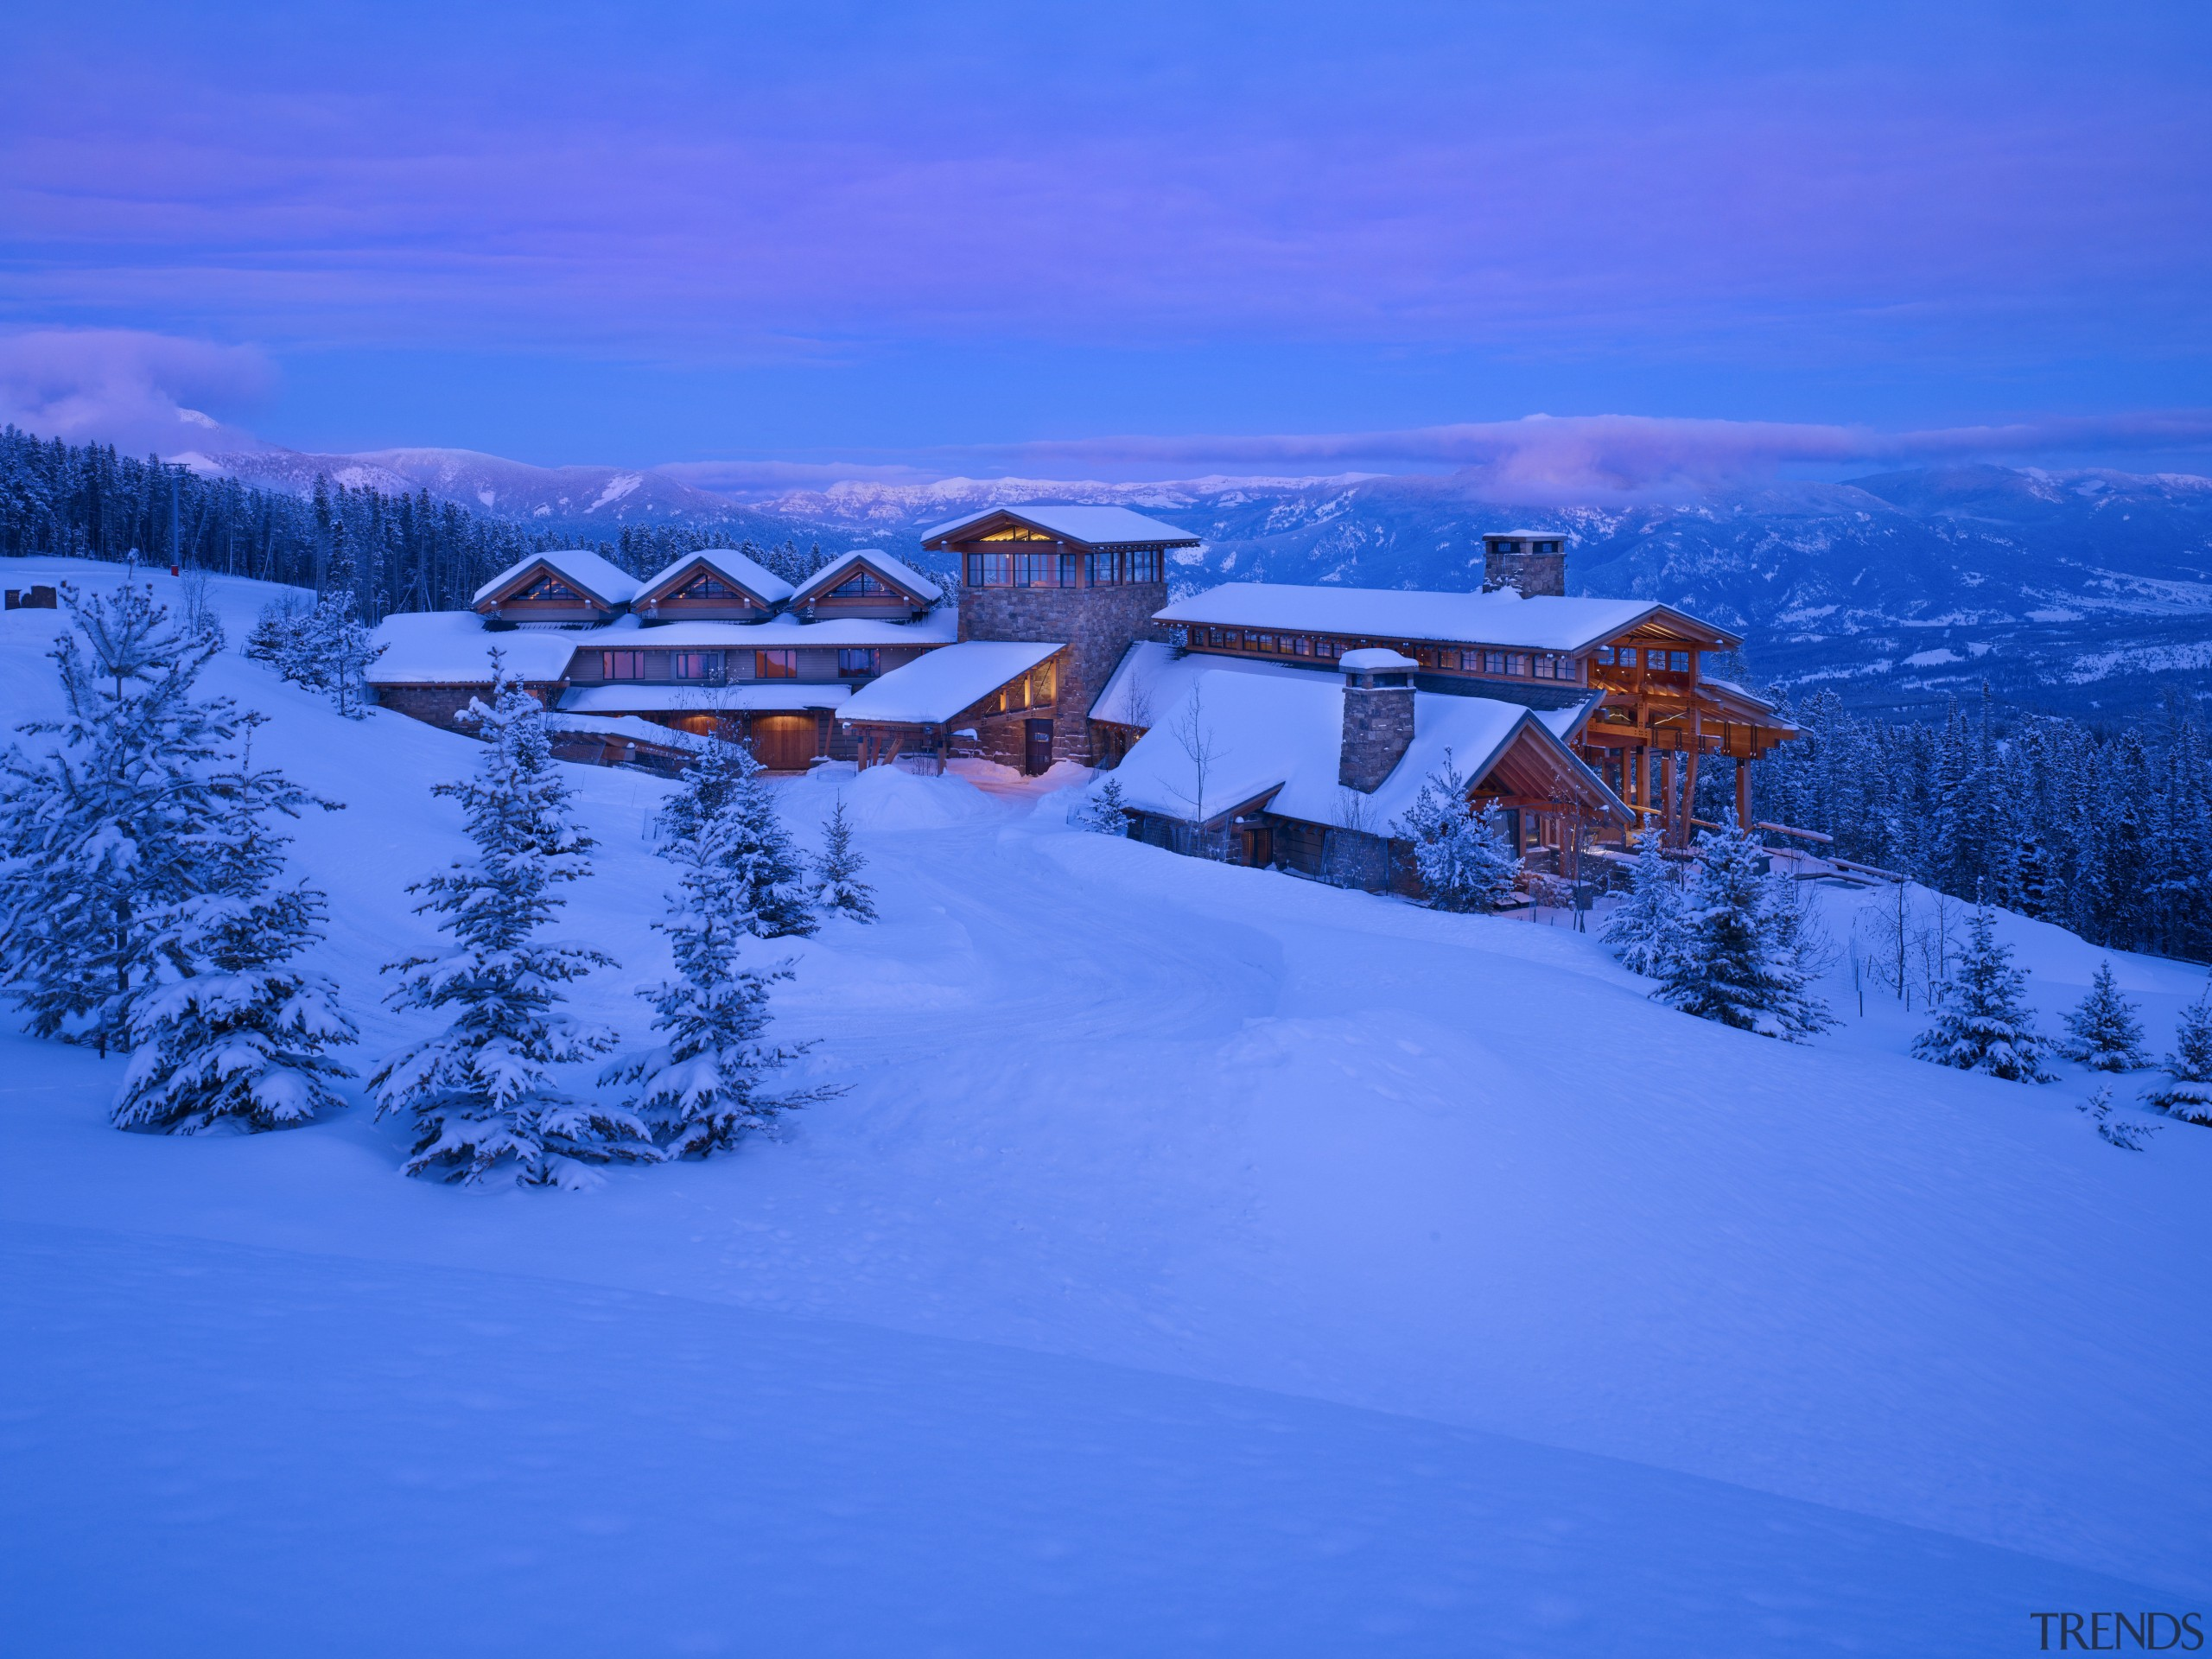 The master bedroom wing of this mountain retreat alps, arctic, cloud, freezing, geological phenomenon, glacial landform, landscape, mount scenery, mountain, mountain range, mountainous landforms, nature, piste, sky, snow, tree, winter, blue